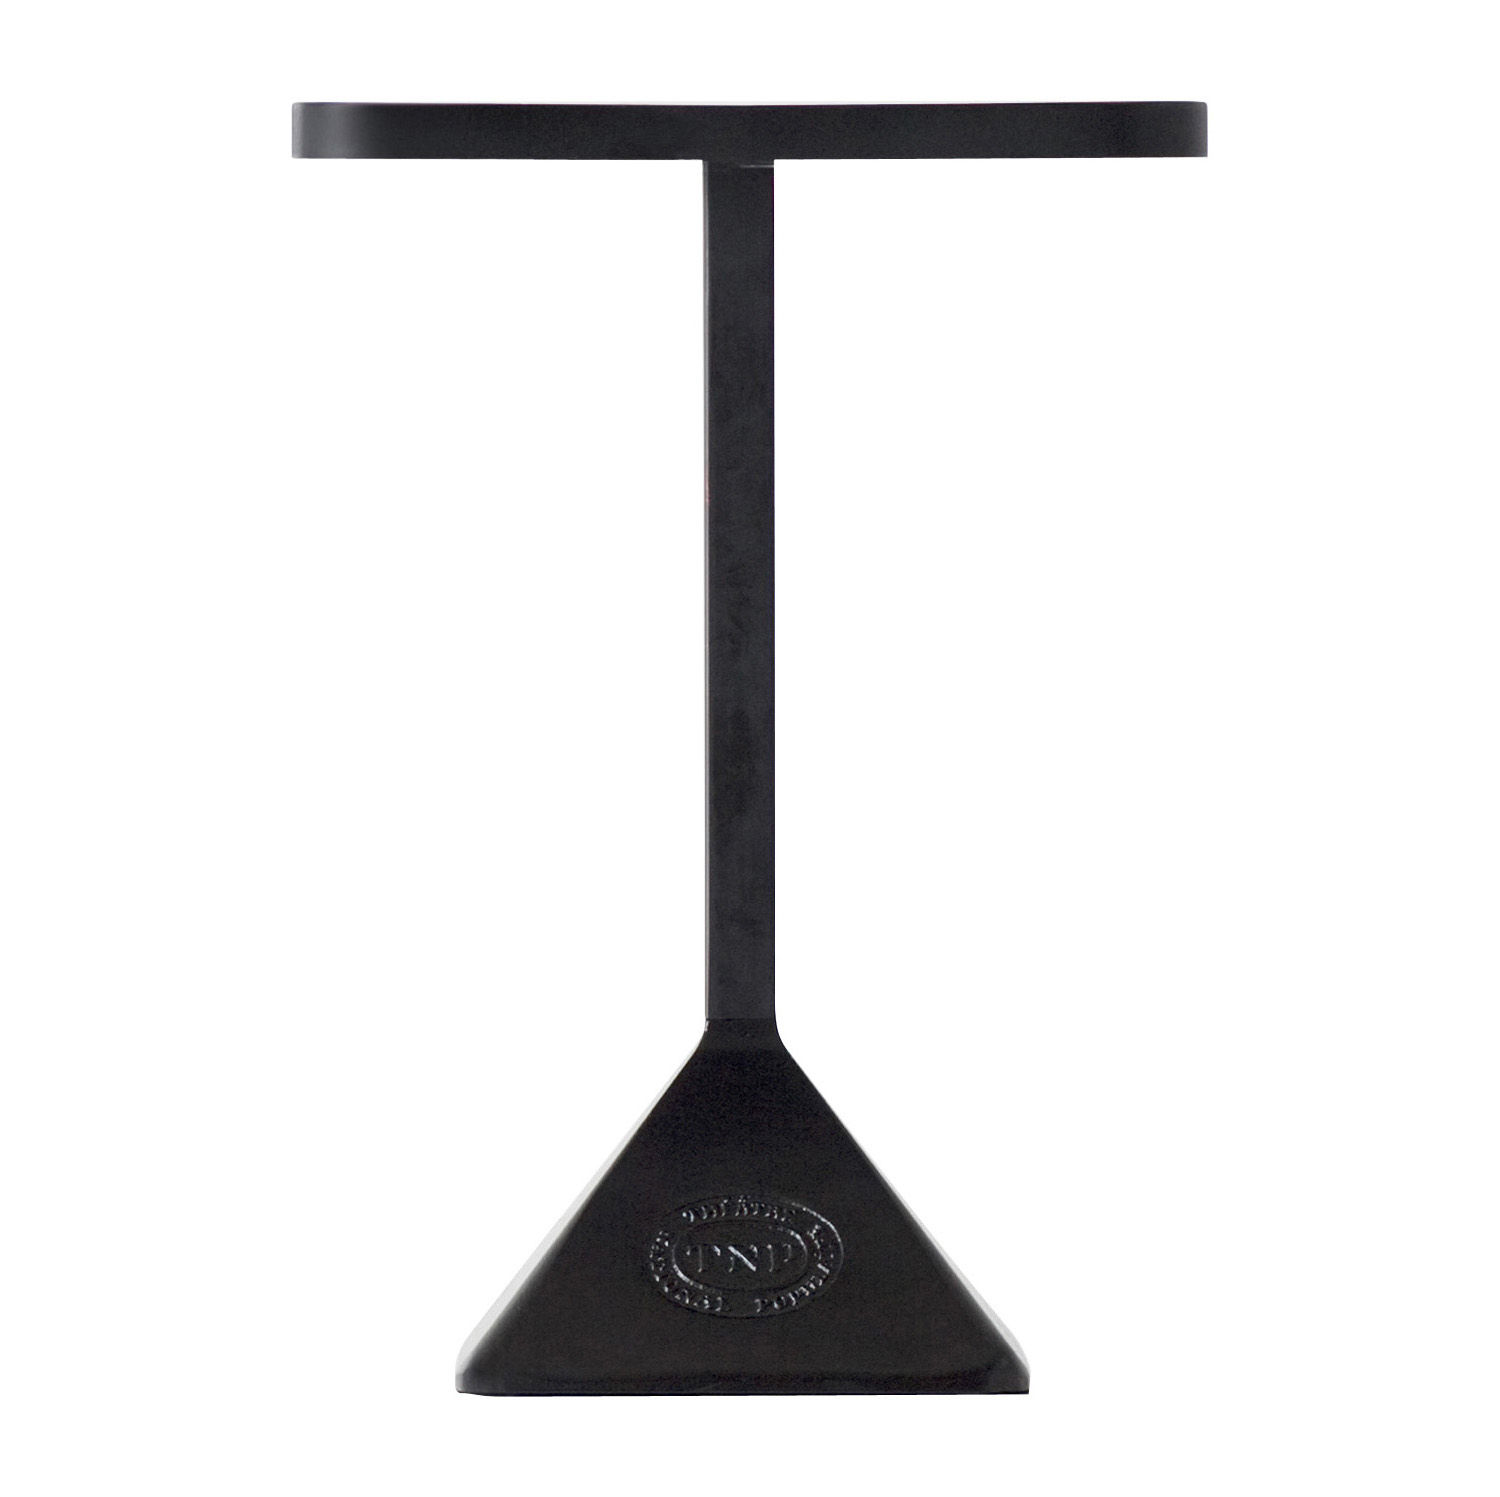 Outdoor - Garden Tables - TNP Rectangular table - Rectangular - 70 x 50 cm by Kristalia - 70 x 50 cm - Black frame / Black top - Cast iron, Lacquered steel, Varnished steel